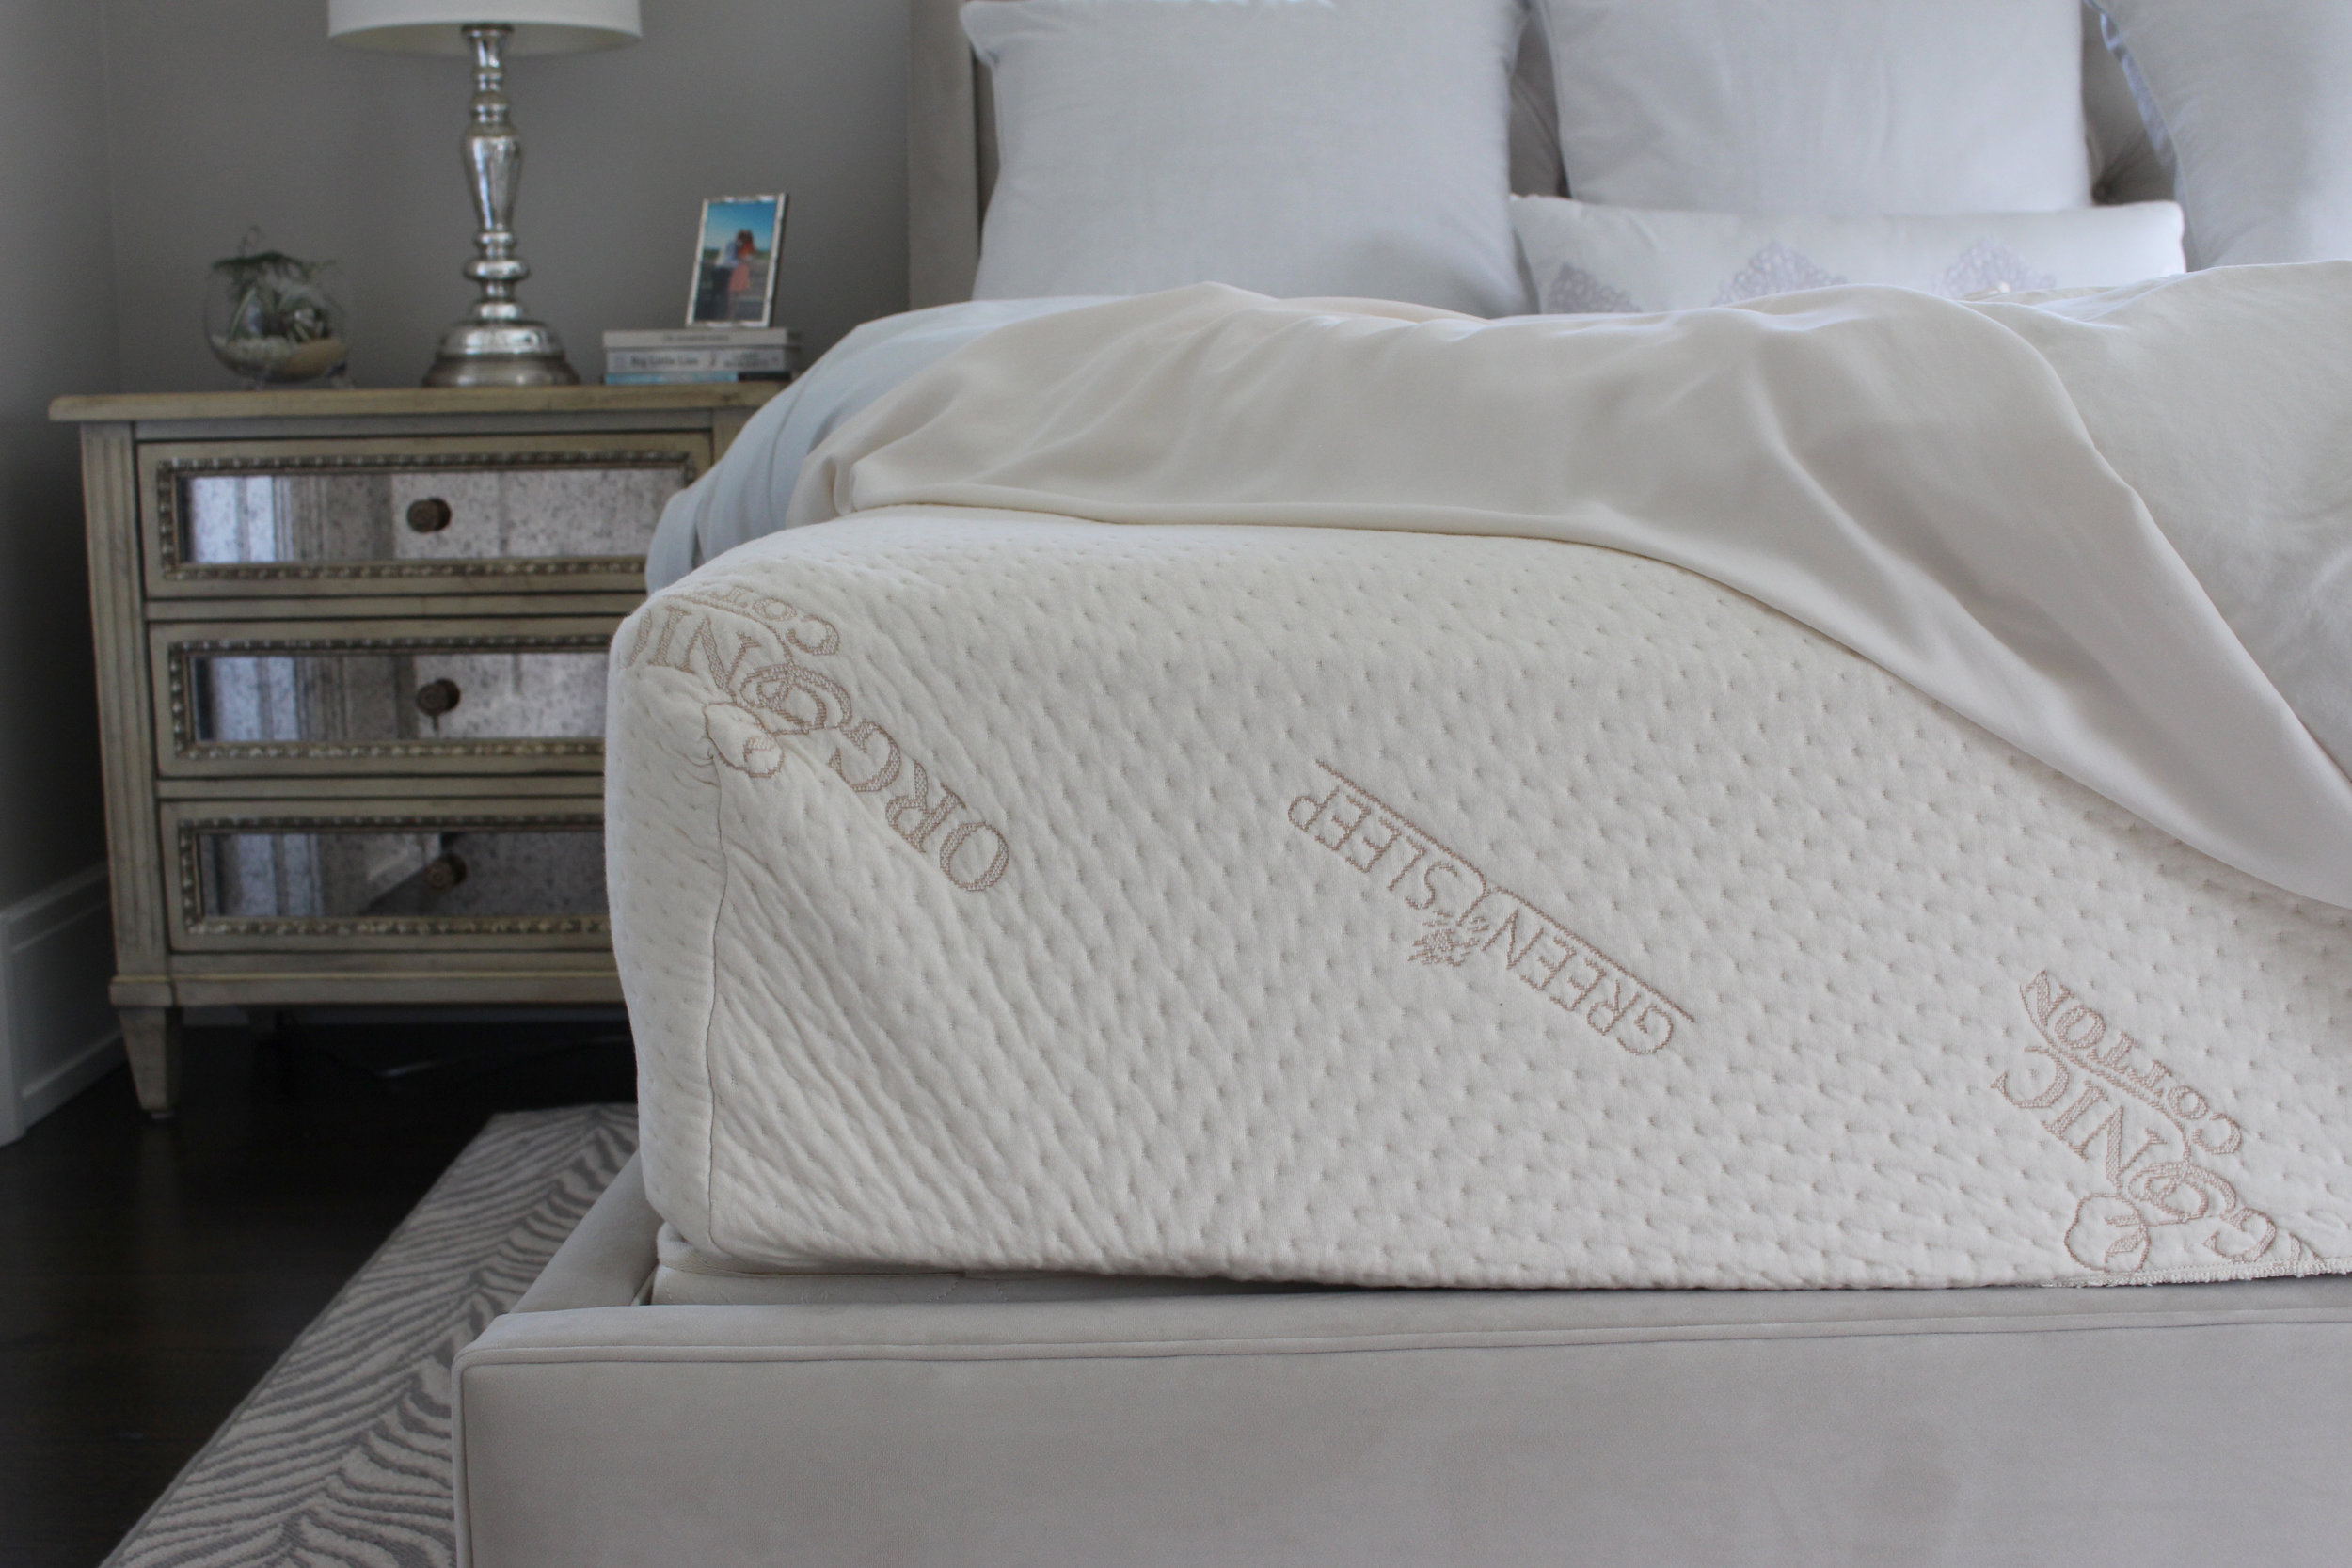 We kept the original Green Sleep organic cotton mattress cover and used it on our Naturepedic mattress.